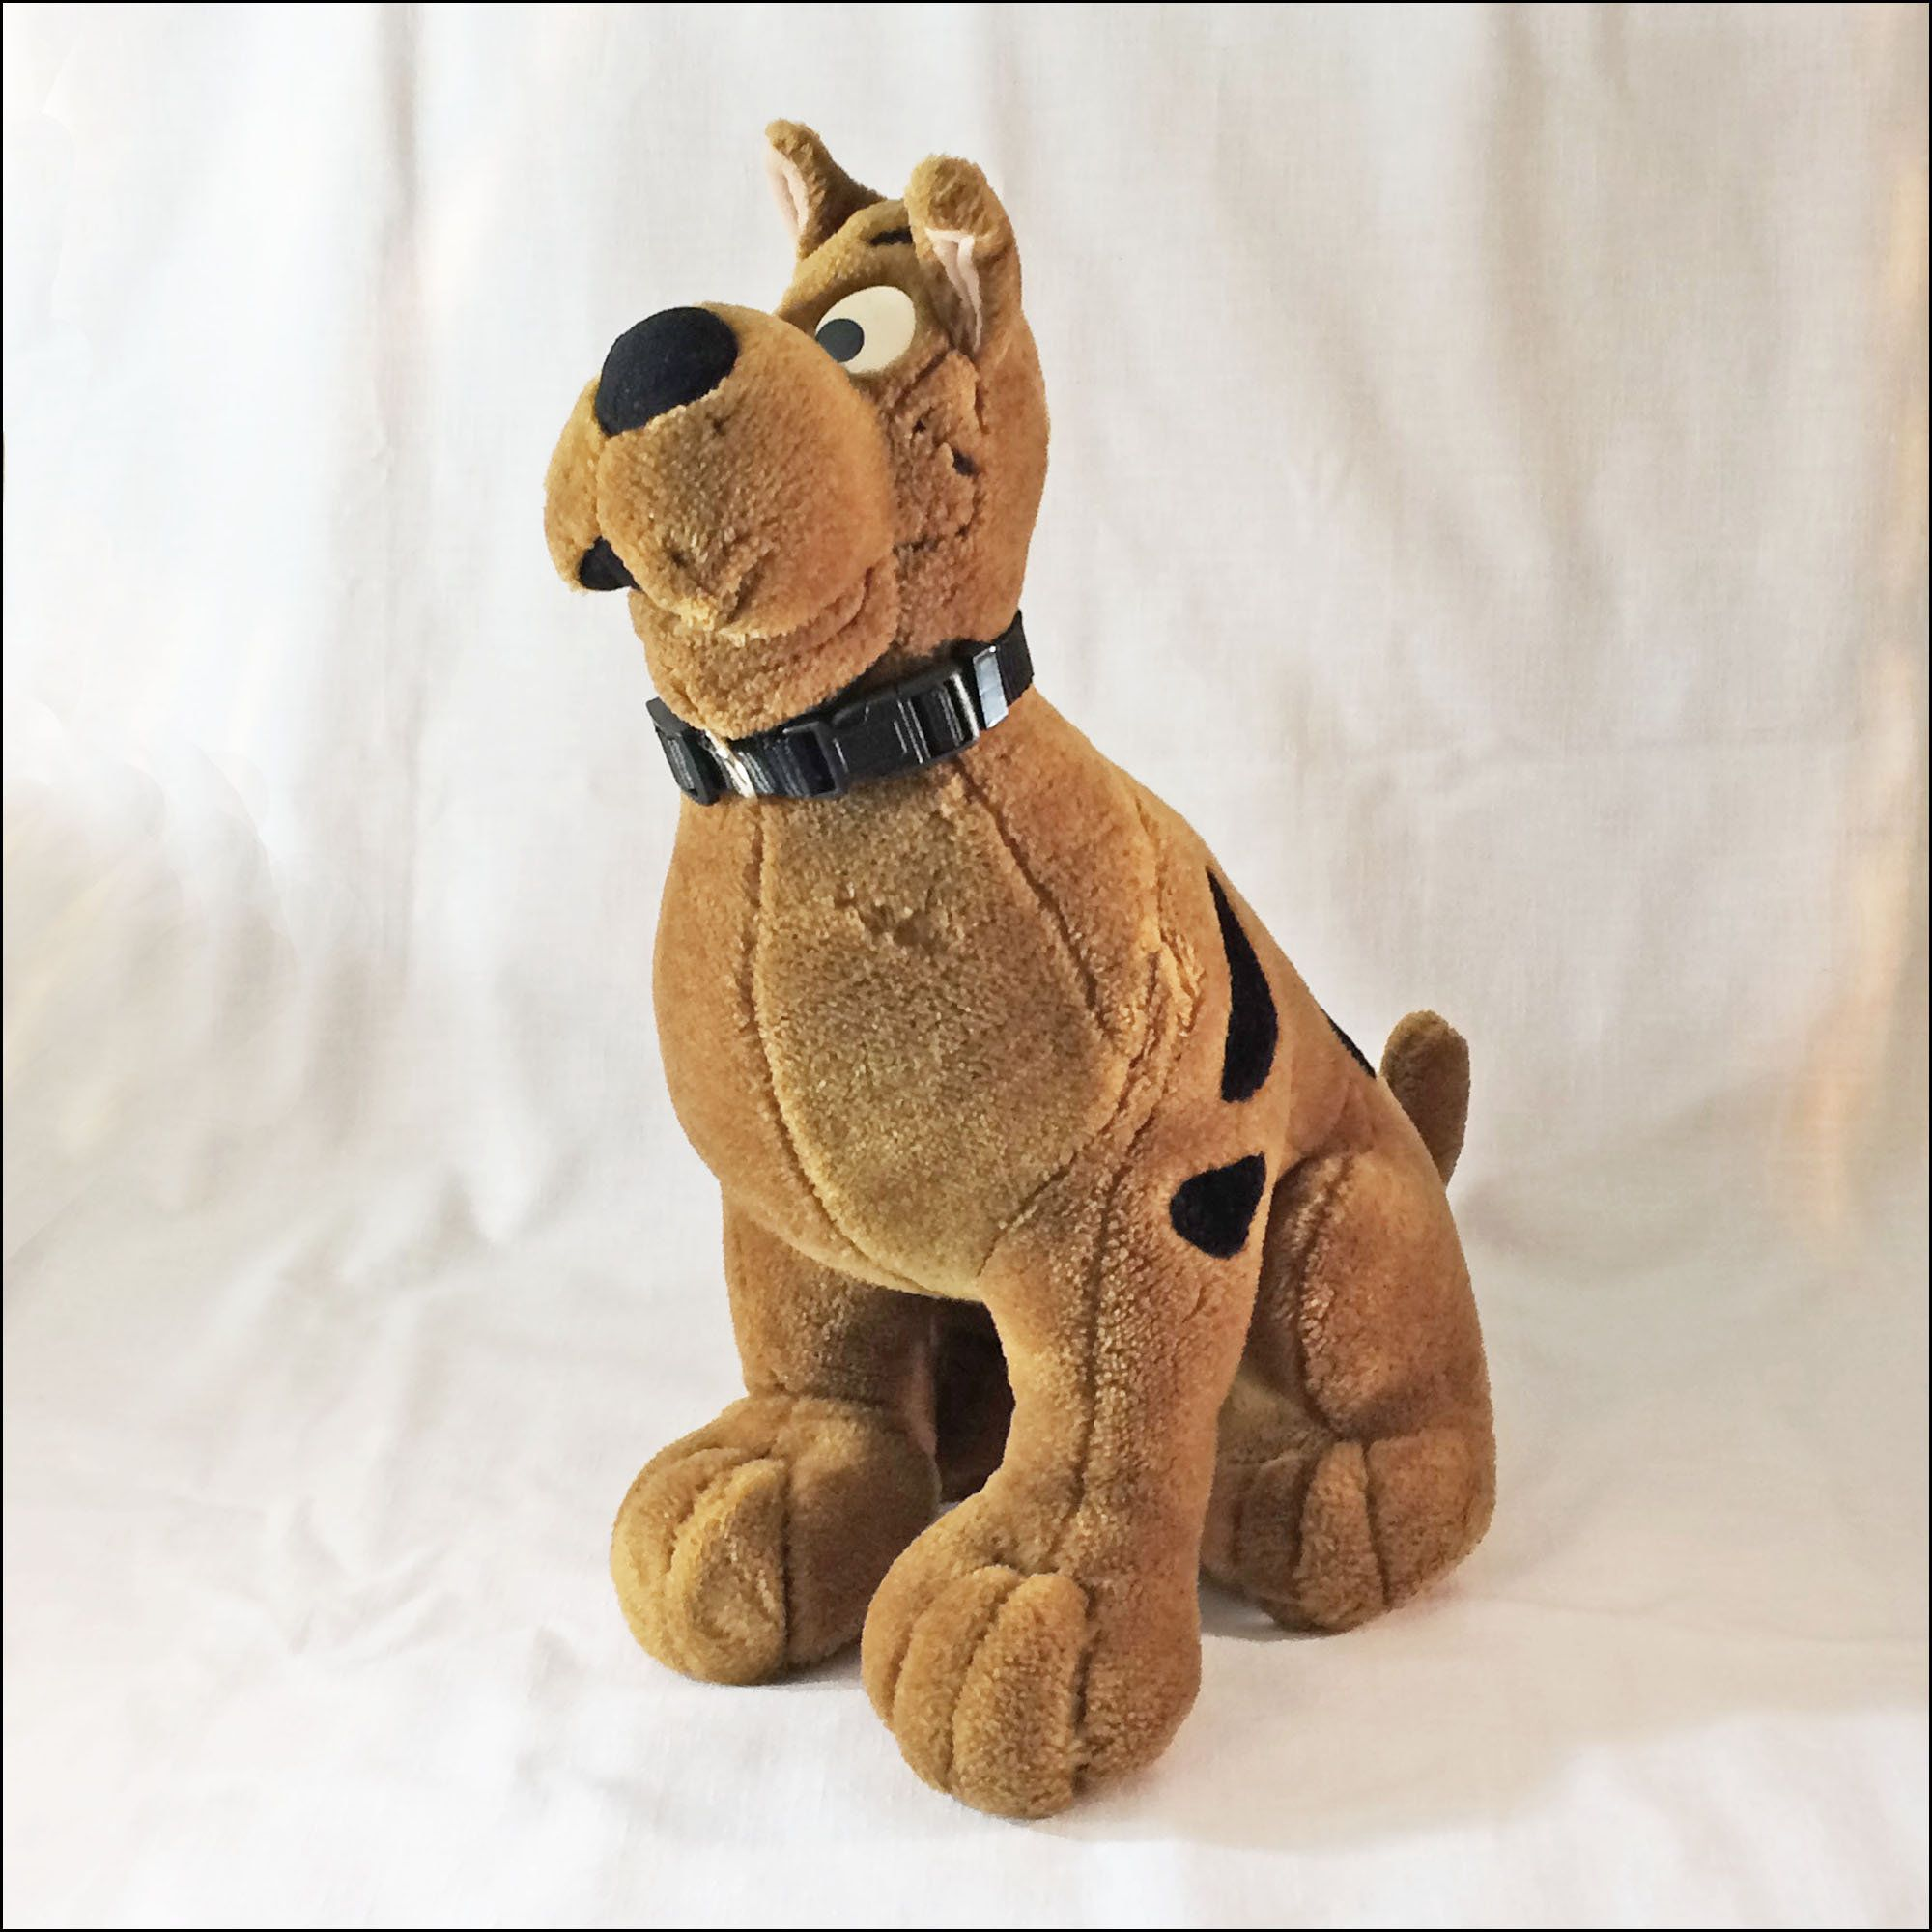 This Large Vintage Stuffed Animal Scooby Doo Measures About 8